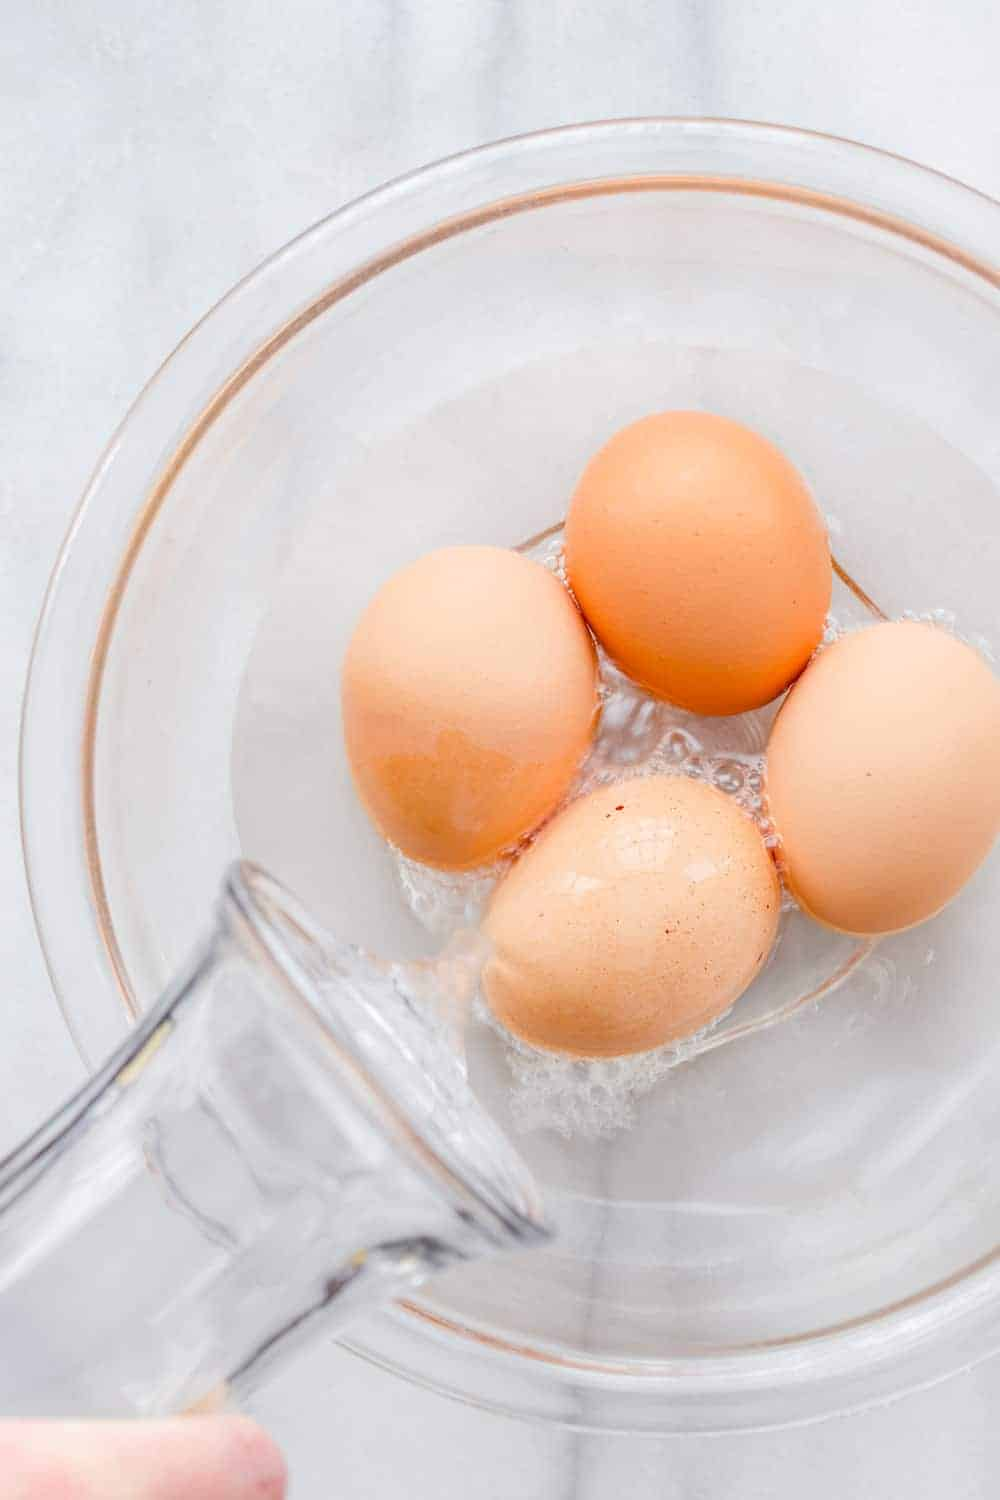 An easy way to bring eggs to room temperature when you're in a hurry.